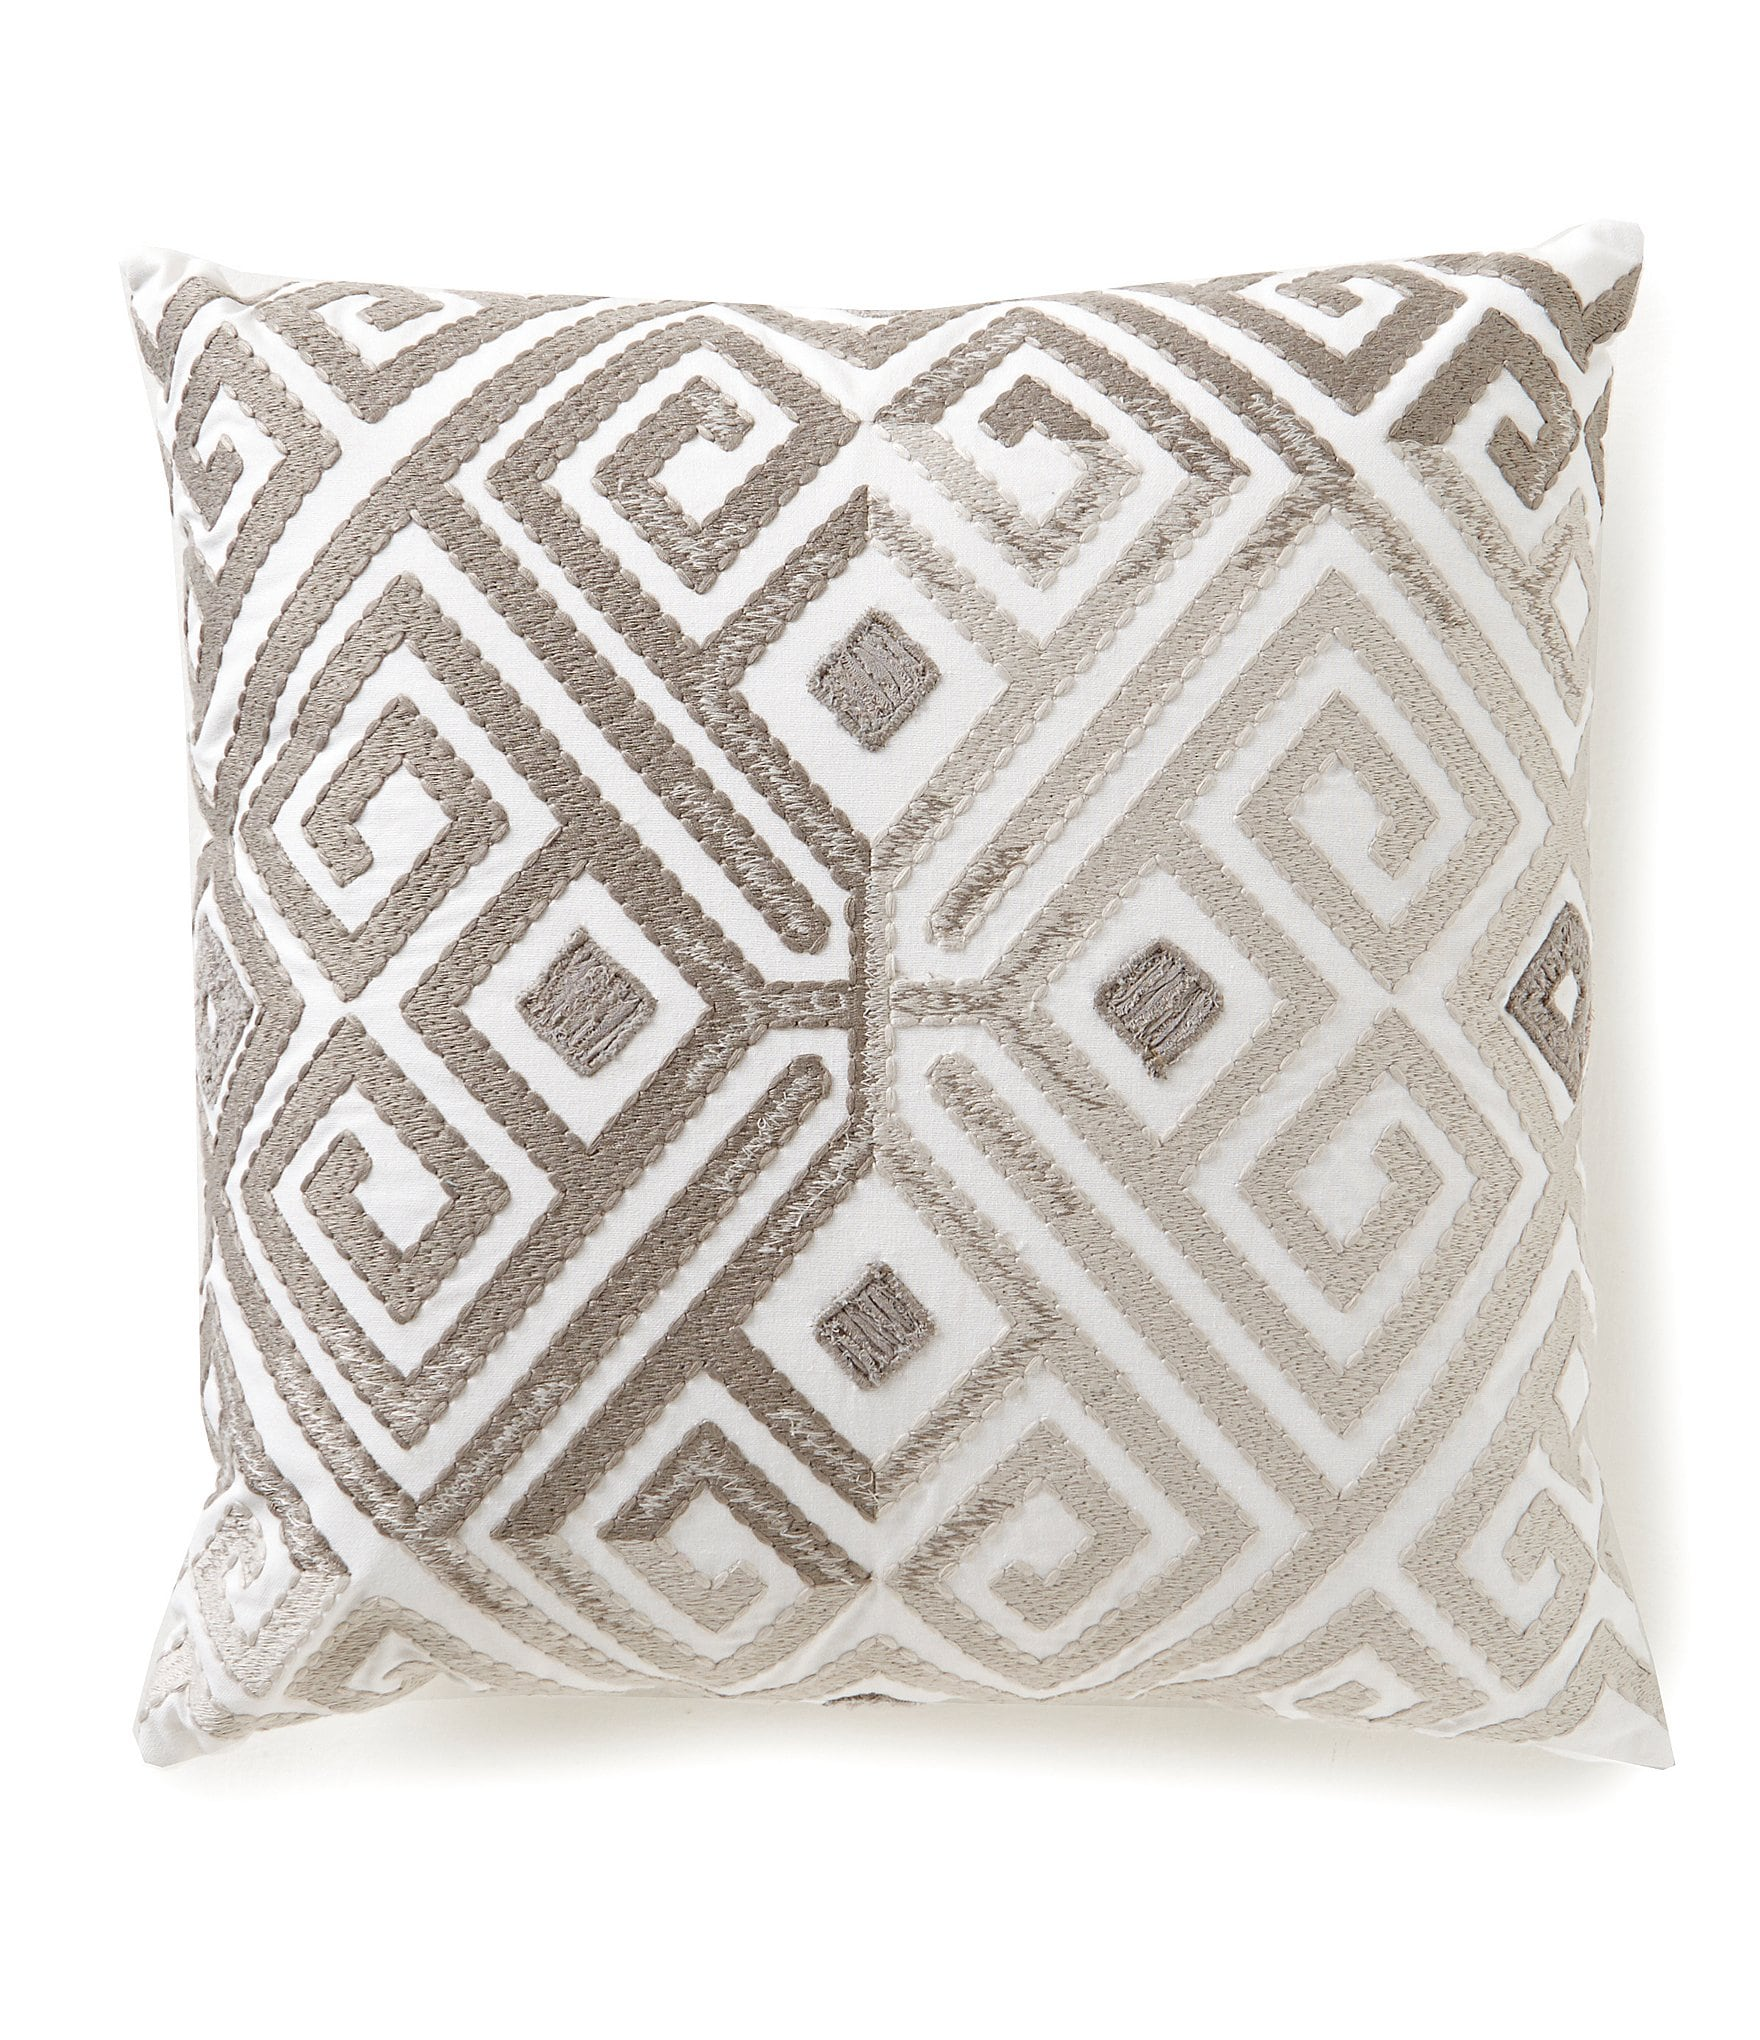 Southern living geometric embroidered oversized square